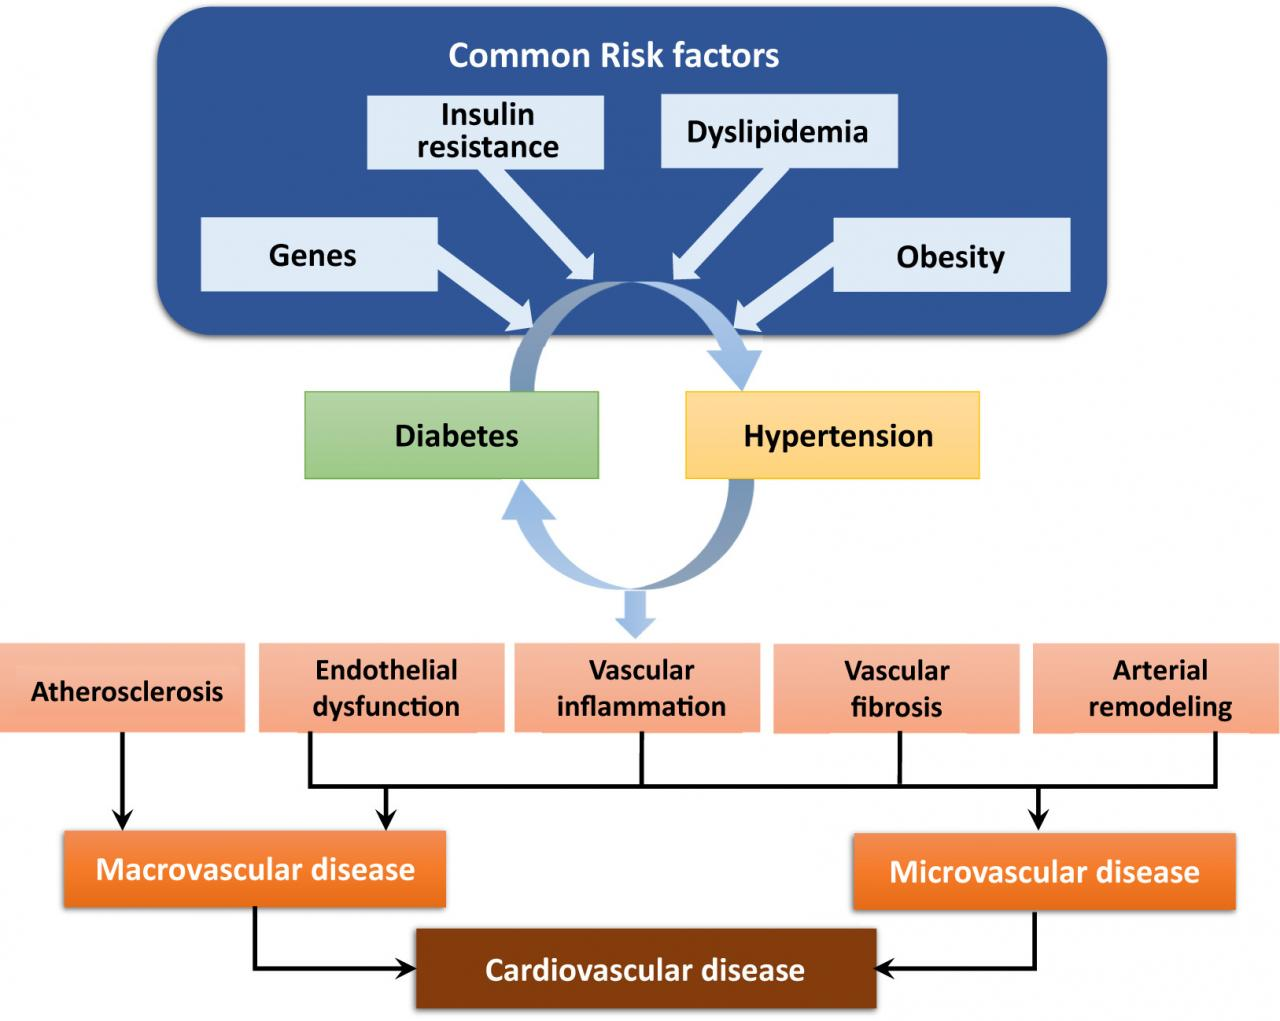 Diabetes, Hypertension, and Cardiovascular Disease: Clinical Insights and  Vascular Mechanisms - Canadian Journal of Cardiology